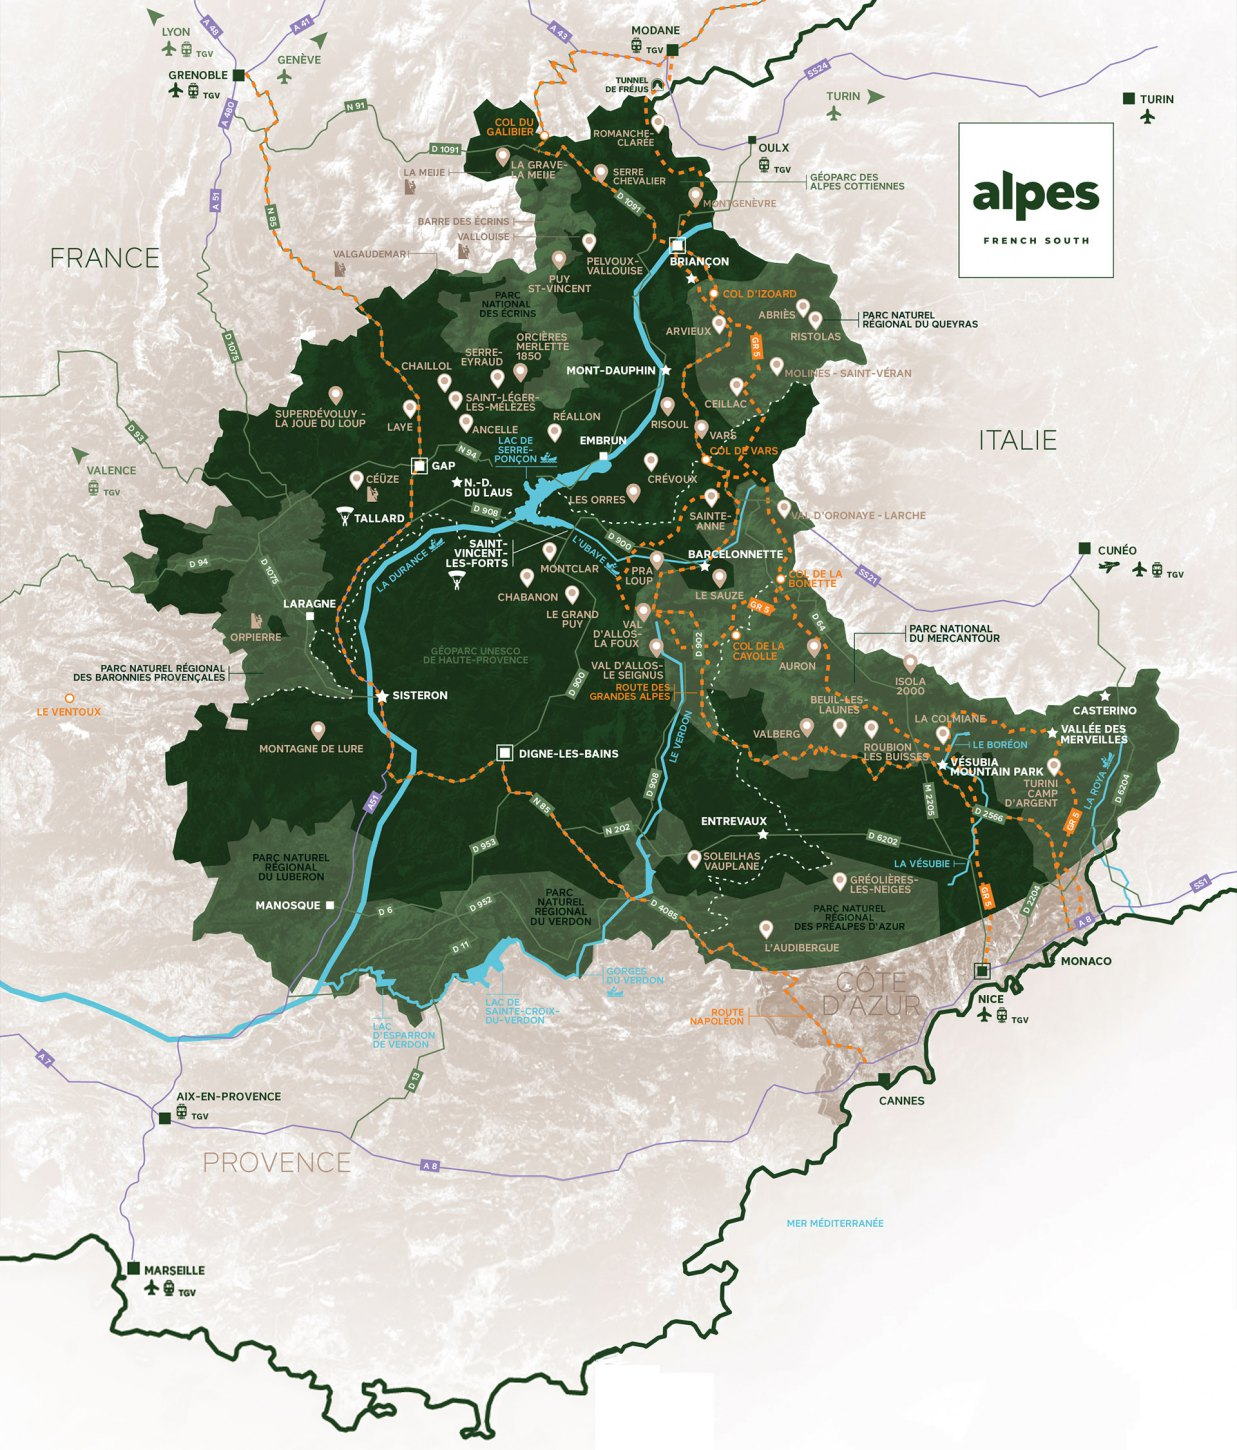 carte marque Alpes French South purealpes